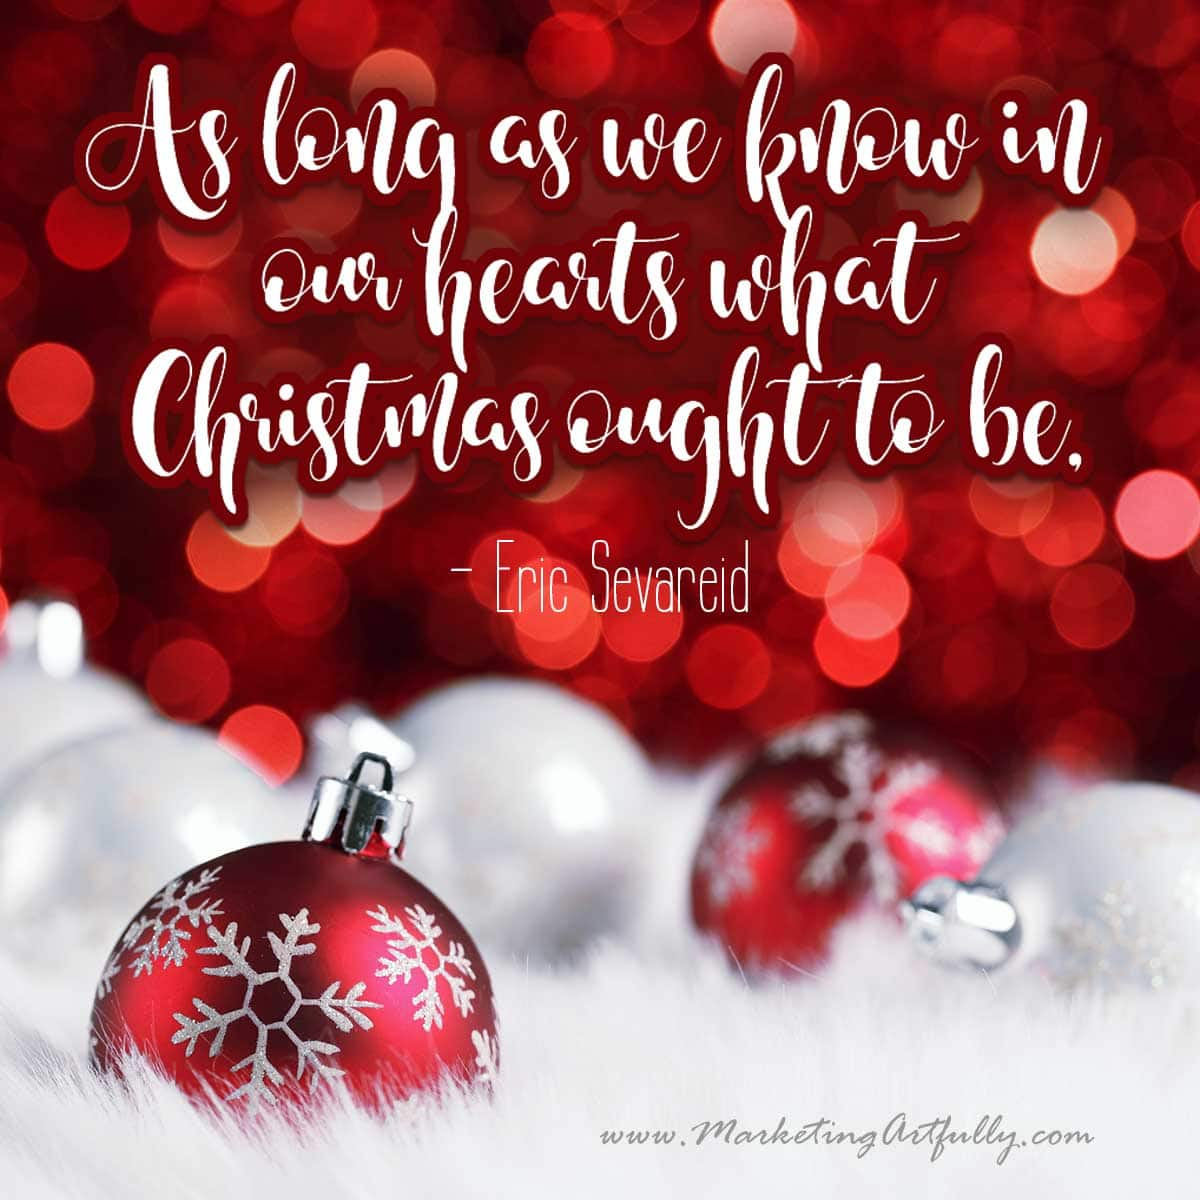 As long as we know in our hearts what Christmas ought to be, Christmas is. ~Eric Sevareid... Christmas Quotes and Sayings For Business.